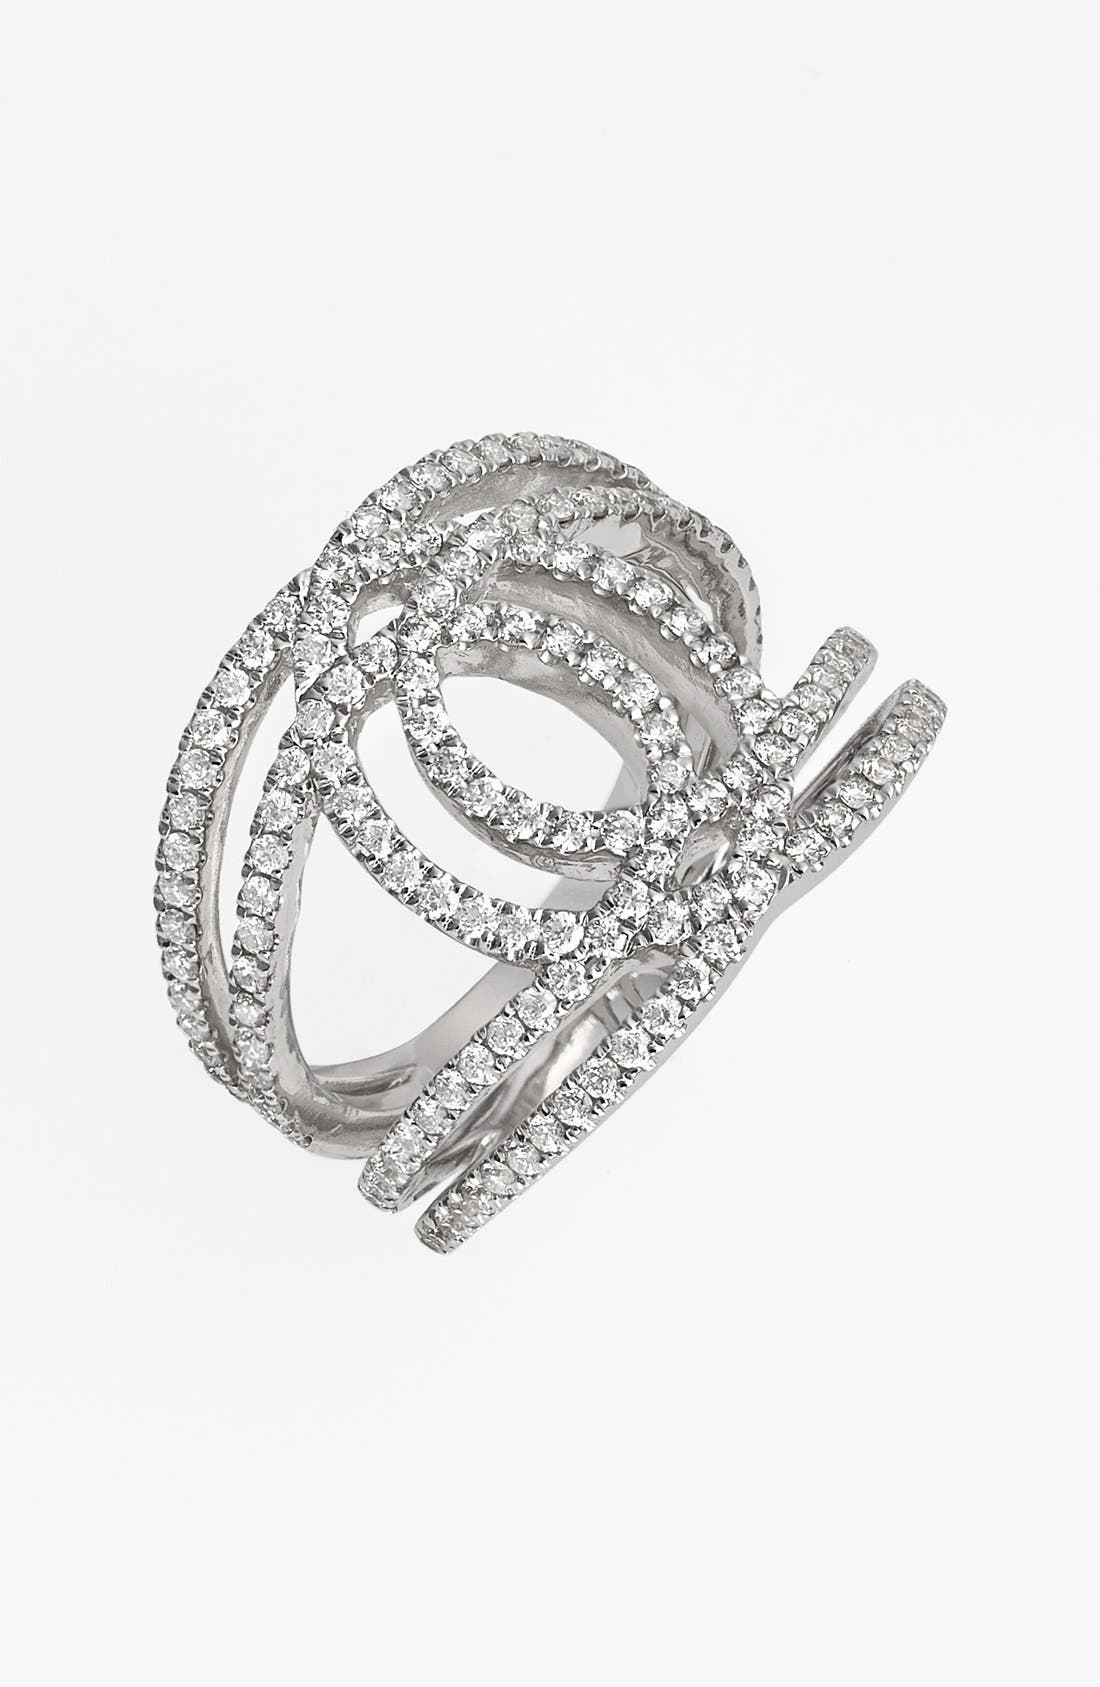 Main Image - Bony Levy 'Double Interlock' Diamond Cocktail Ring (Nordstrom Exclusive)